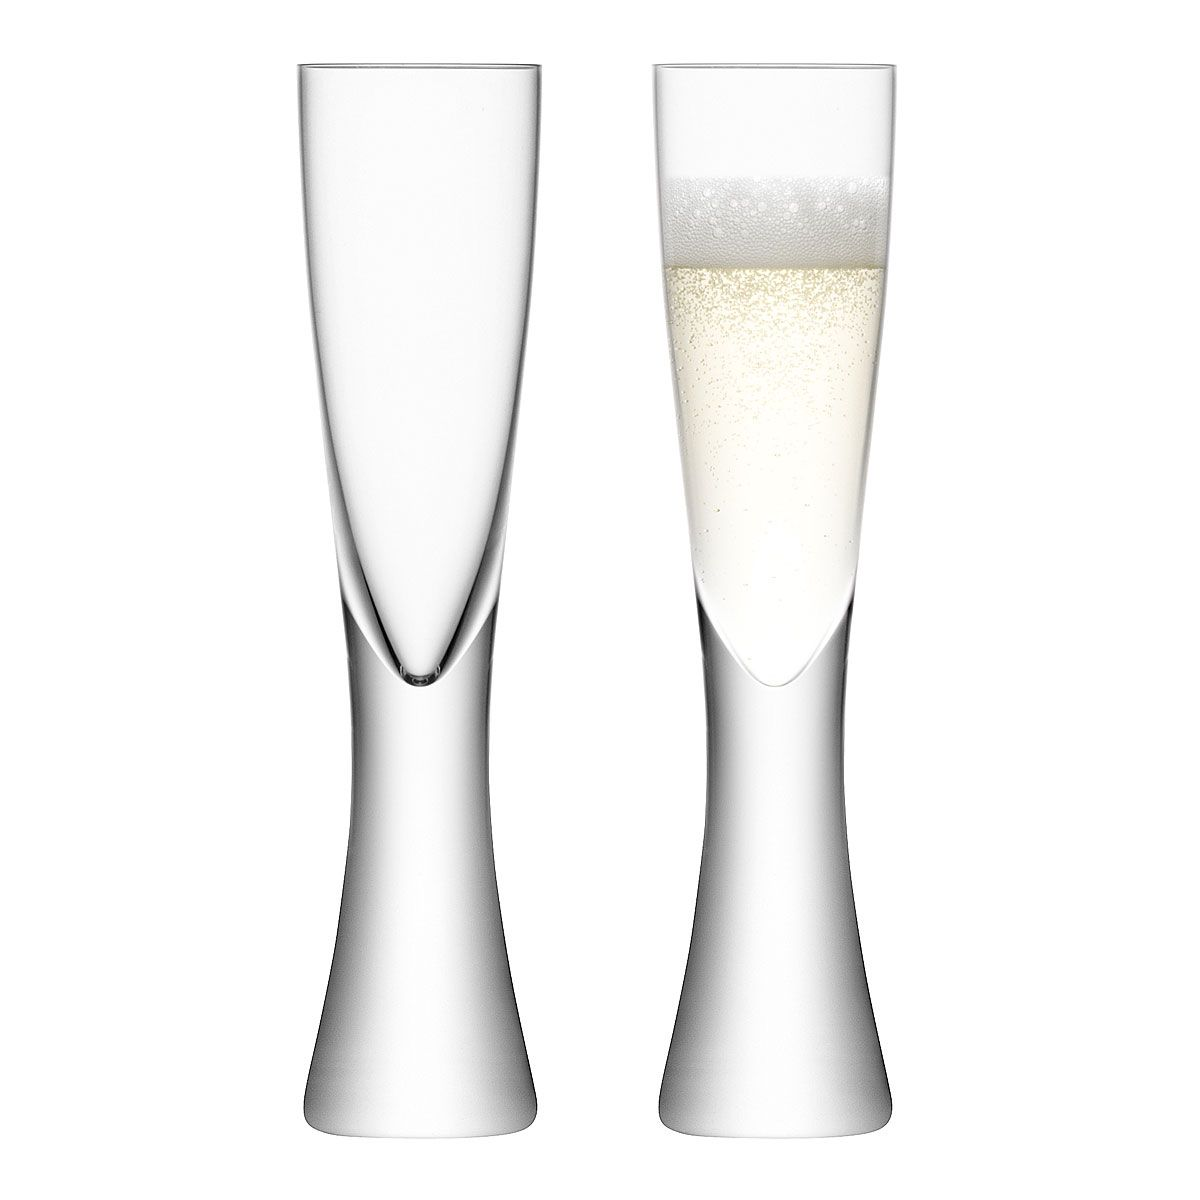 Elina Champagne Flutes Set Of 2 Blown Glass Glasses Uncommongoods Champagne Flute Set Contemporary Champagne Flutes Champagne Flutes